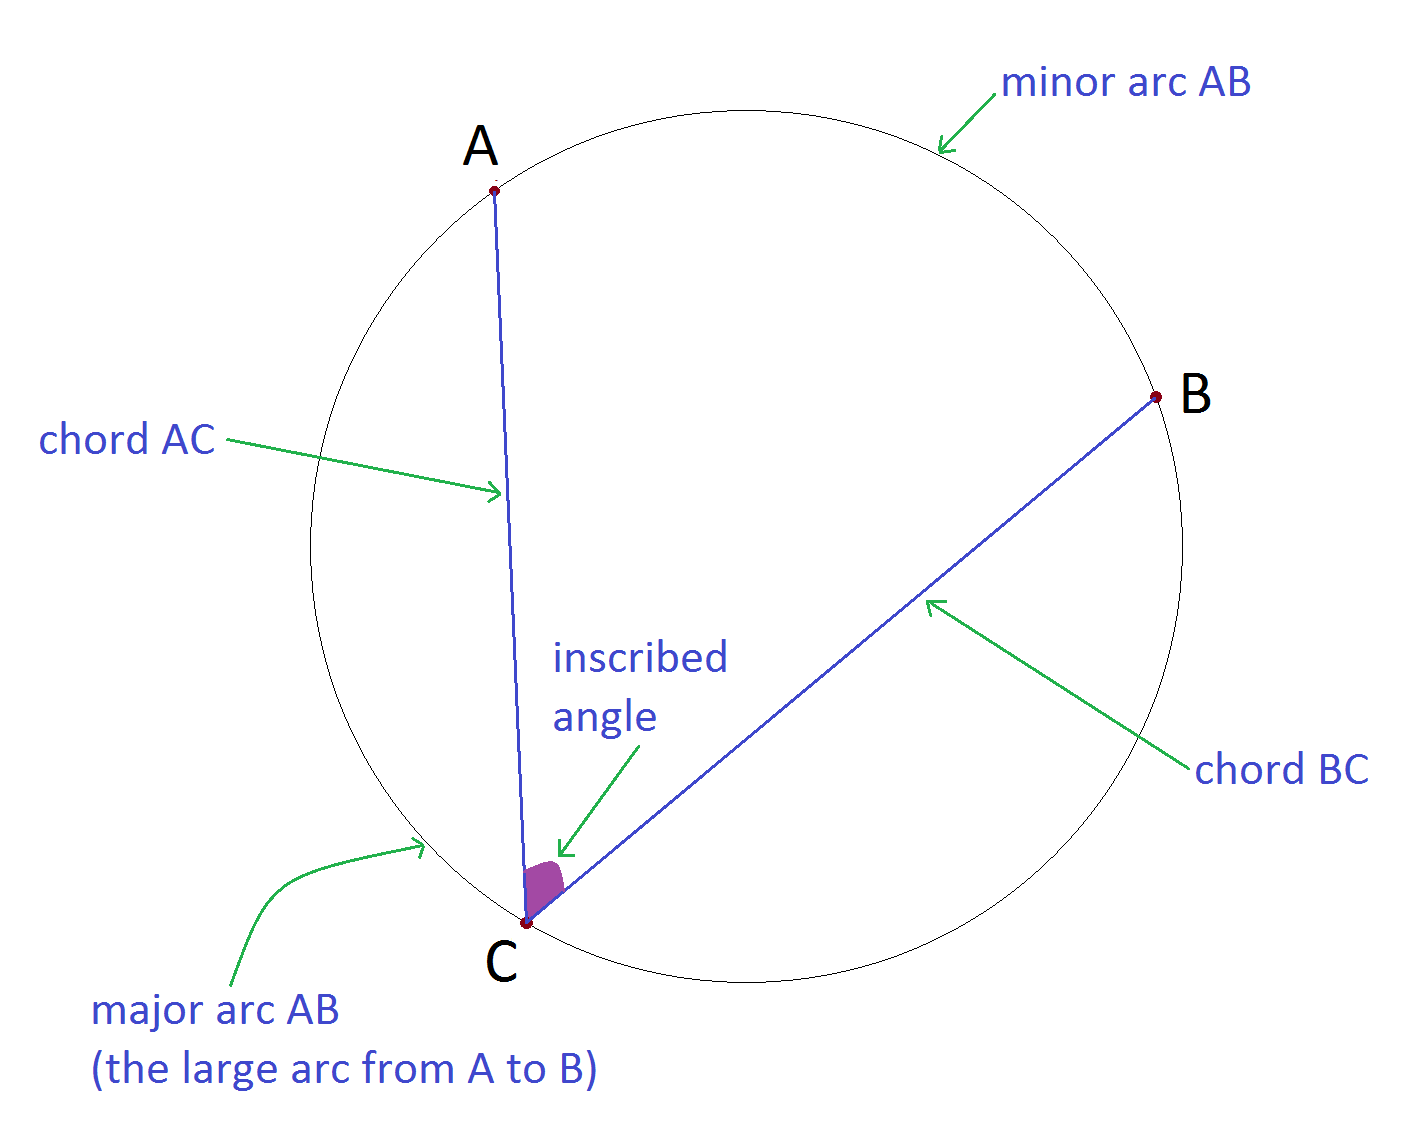 Angles all around mathspace the angle formed by chord a c and chord b c at the common point c is called the inscribed angle this angle as the vertex at point c we would ccuart Image collections